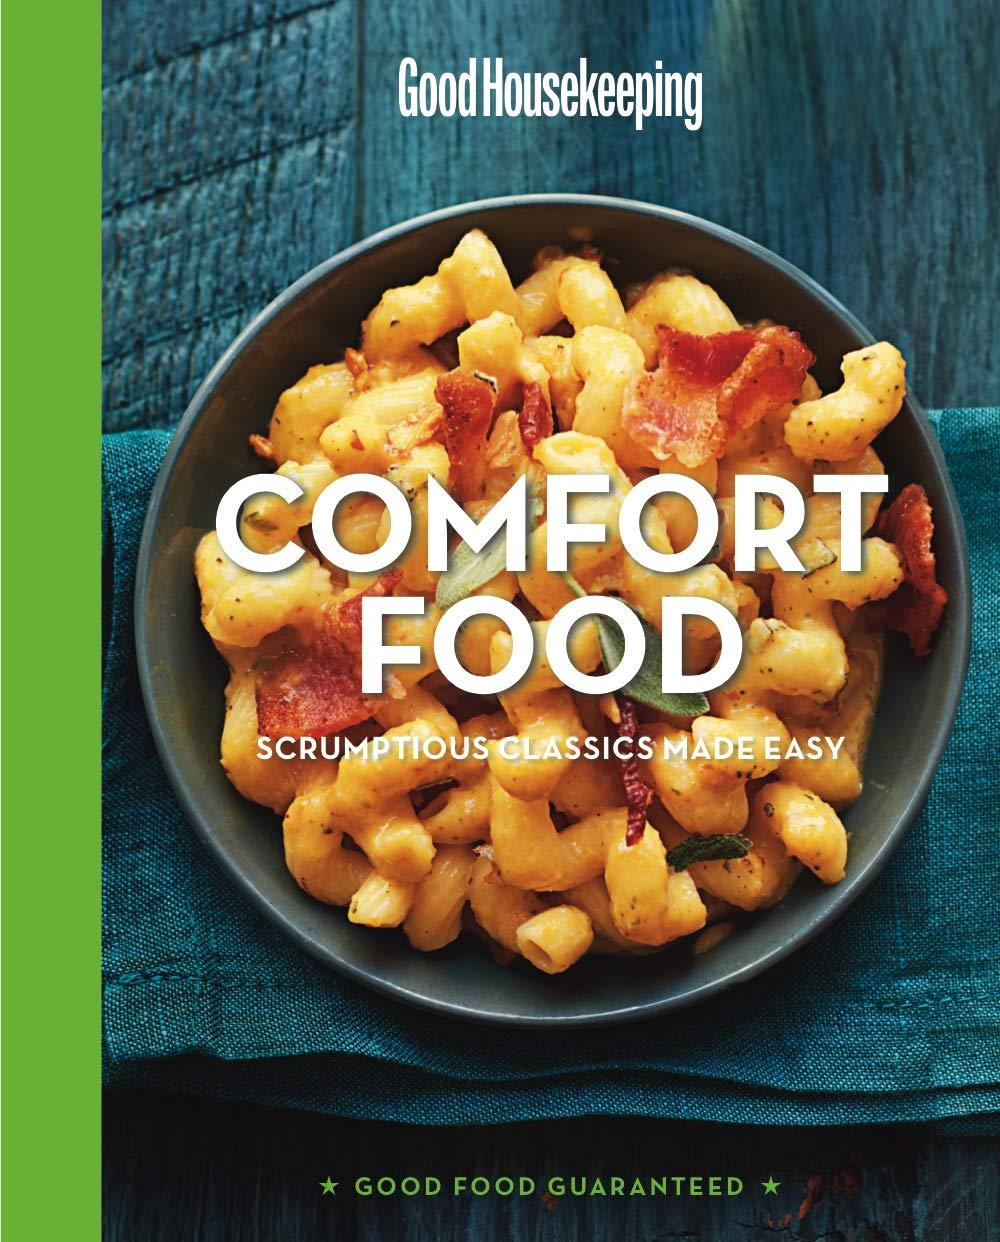 Good Housekeeping Comfort Food: Scrumptious Classics Made Easy (Good Food Guaranteed): Susan Westmoreland, Good Housekeeping: 9781618371546: Amazon.com: ...